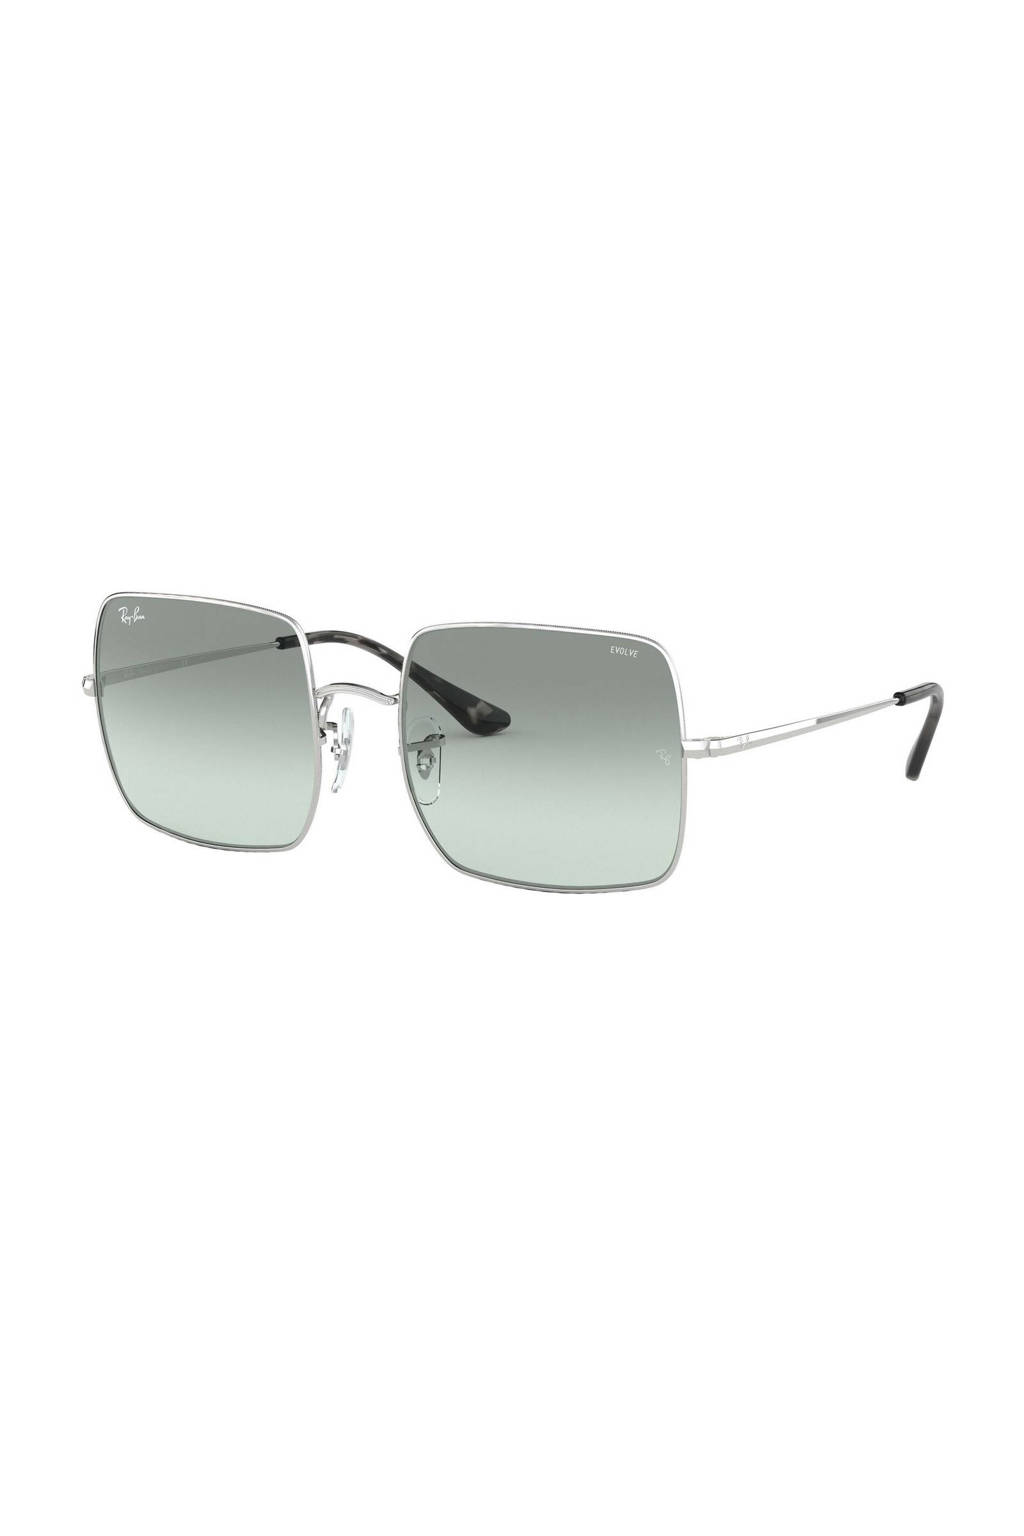 Ray-Ban zonnebril 0RB1971, Blauw